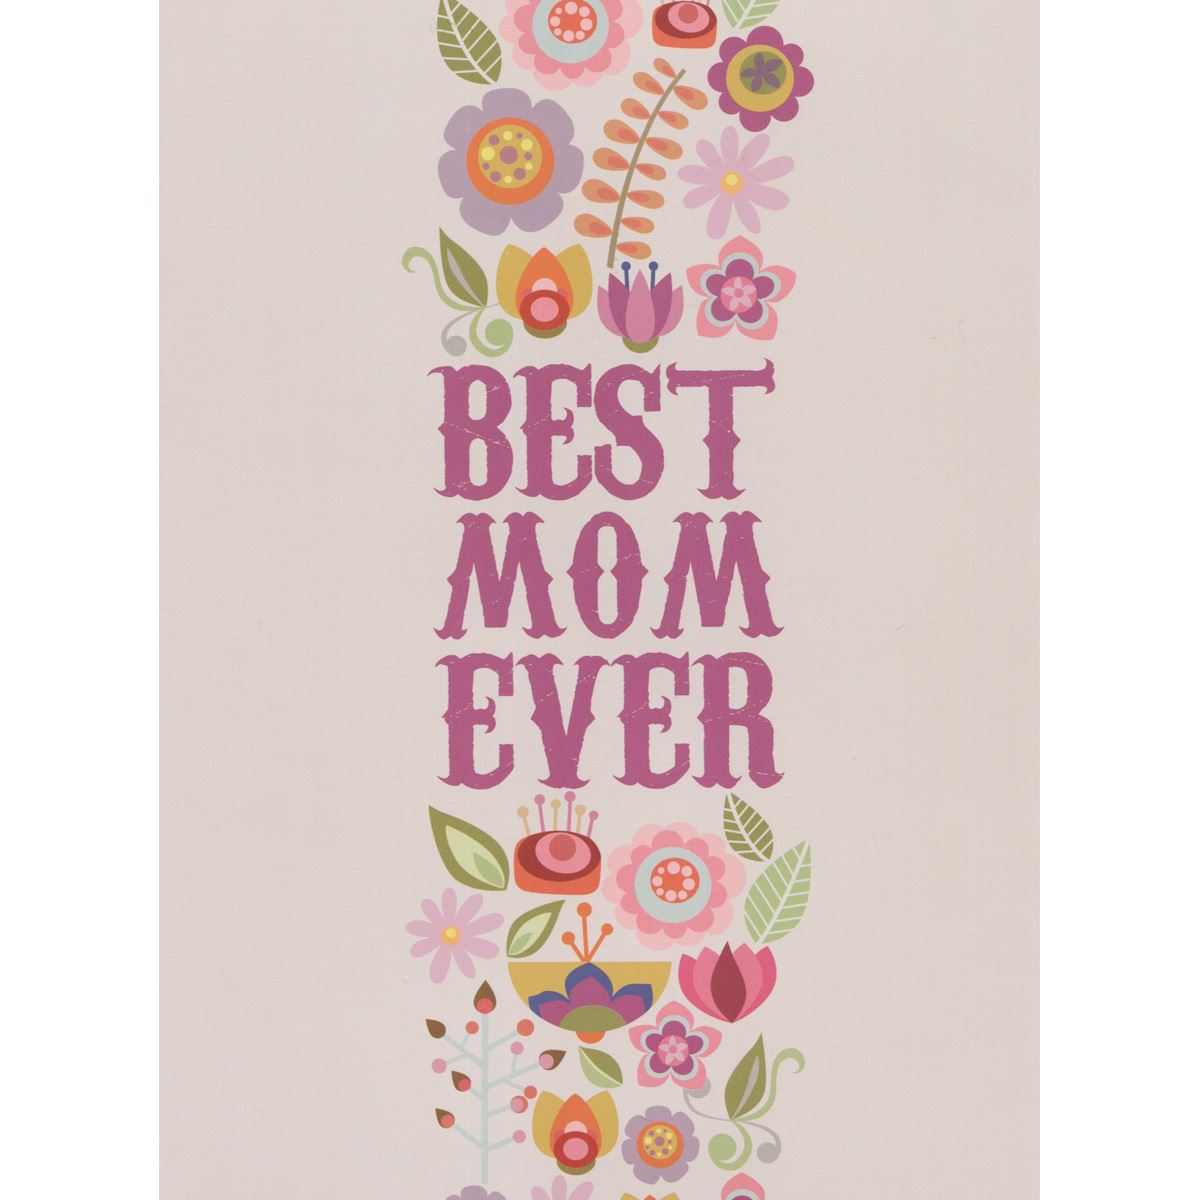 Tarjeta valemtina best mom ever Libro - Sanborns